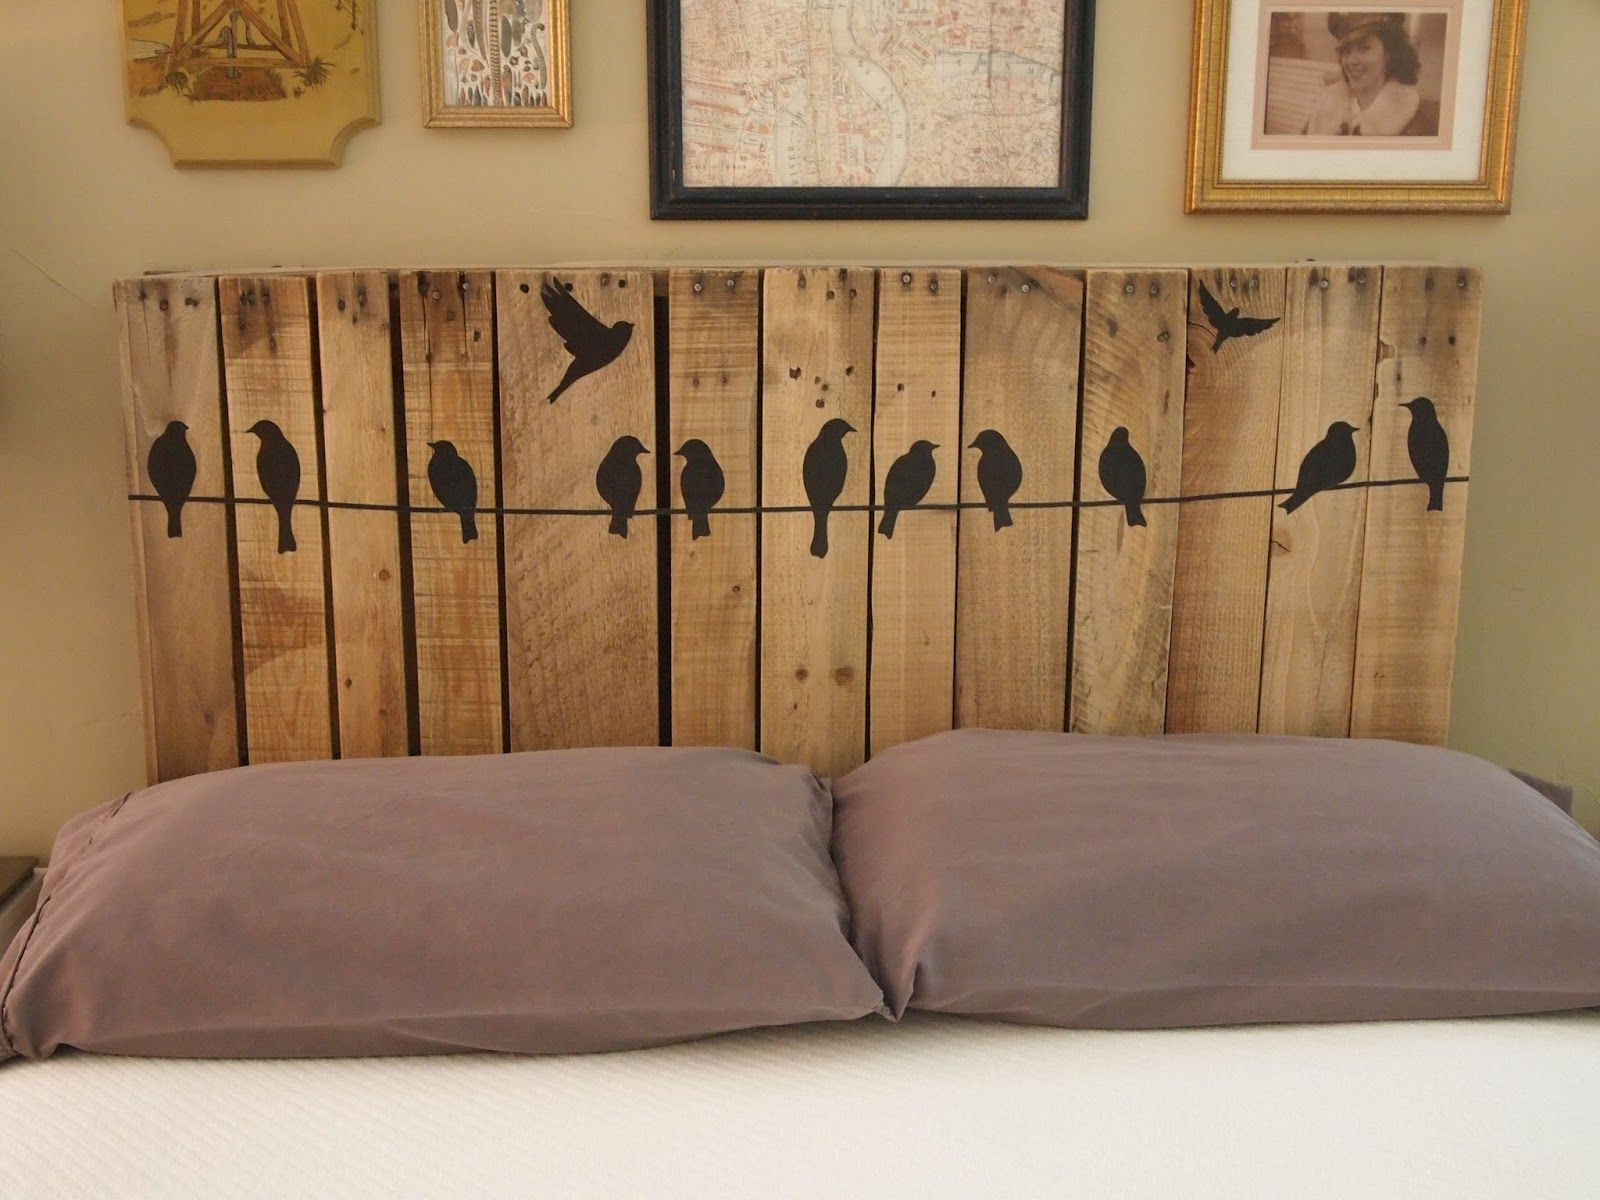 Diy pallet bedroom furniture pjpg  píxeles  decorado  pinterest  pallet